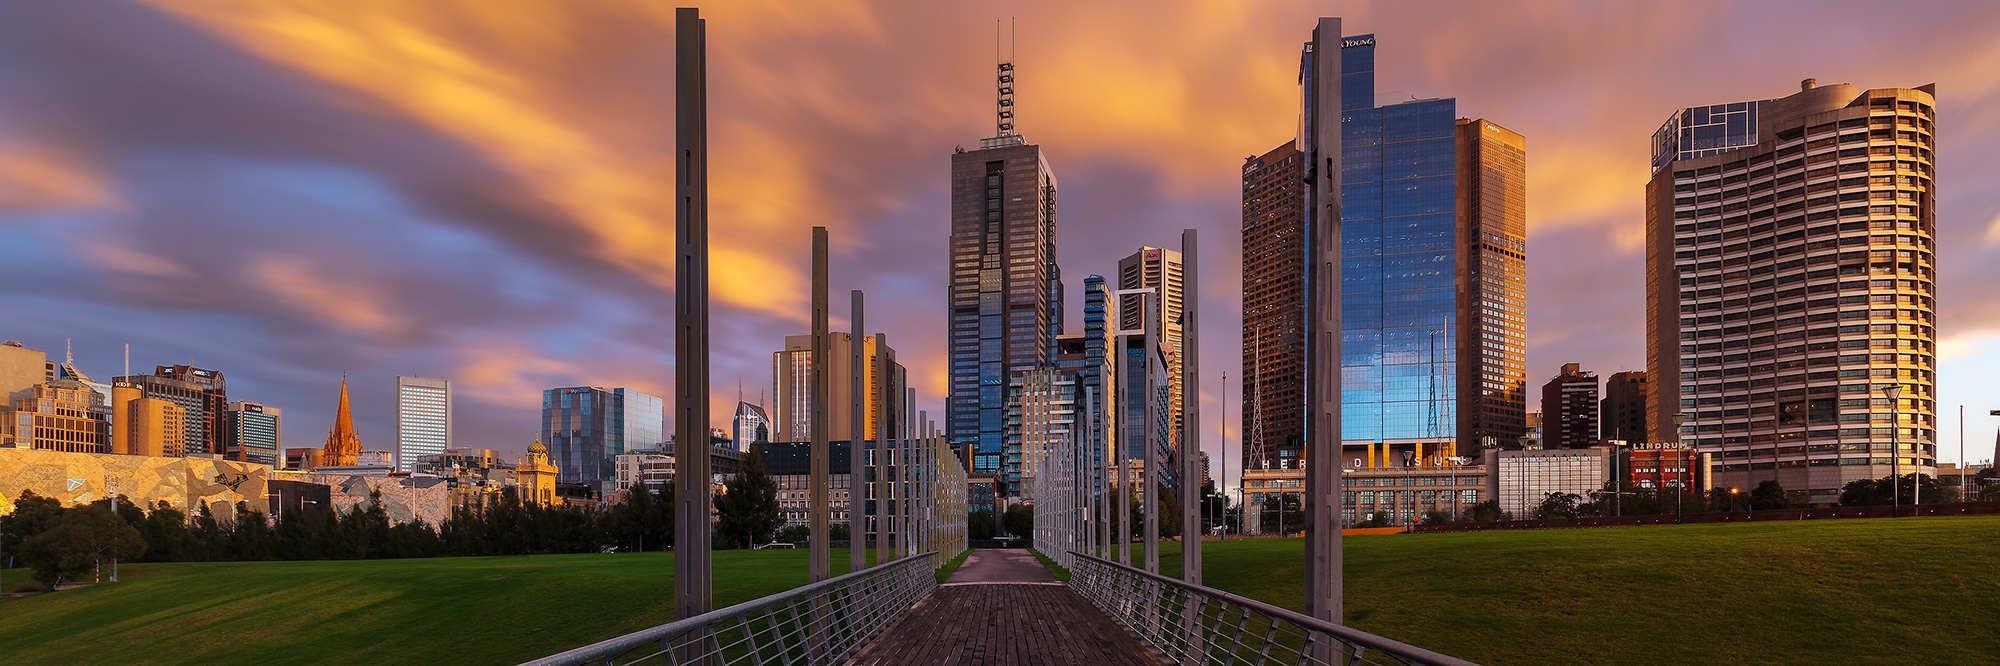 Melbourne Photography Workshop Birrarung Marr